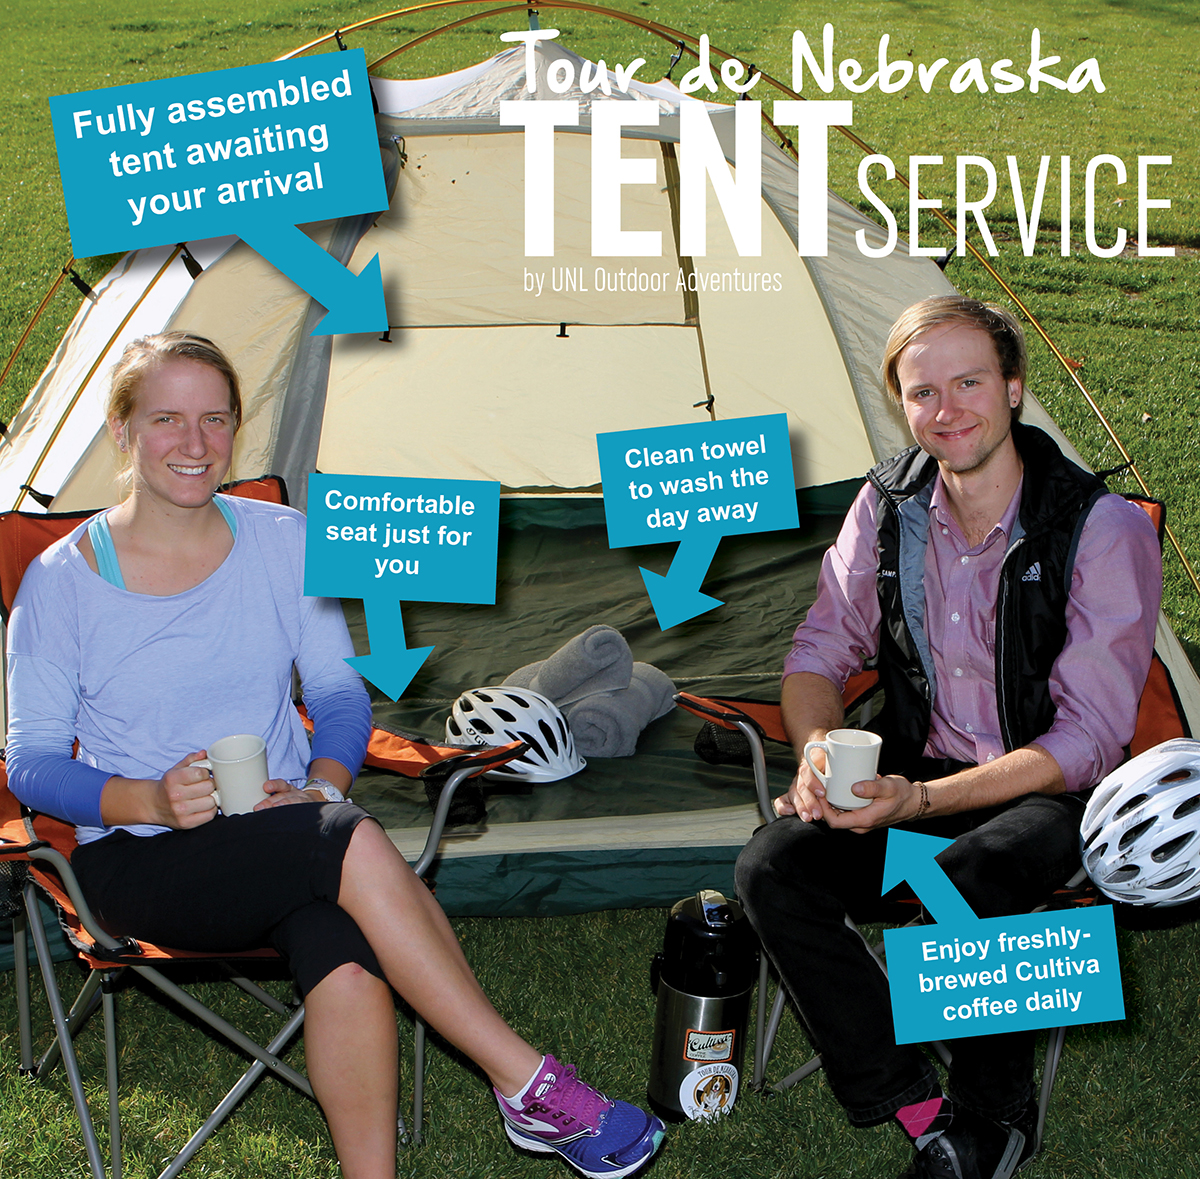 Tent service diagram with tent setup, clean towel each day and chair to sit in.